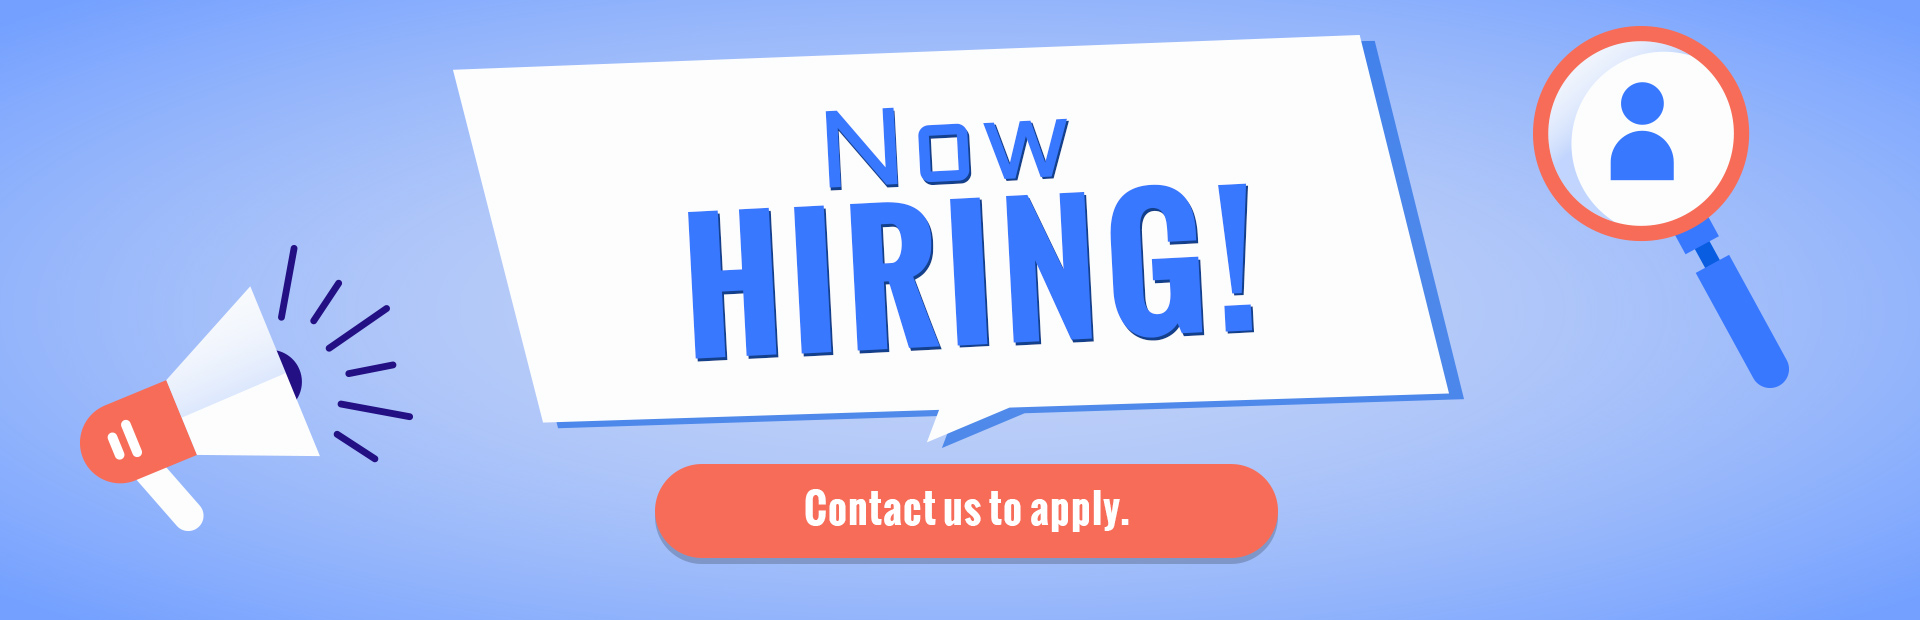 Now Hiring: Contact us to apply.